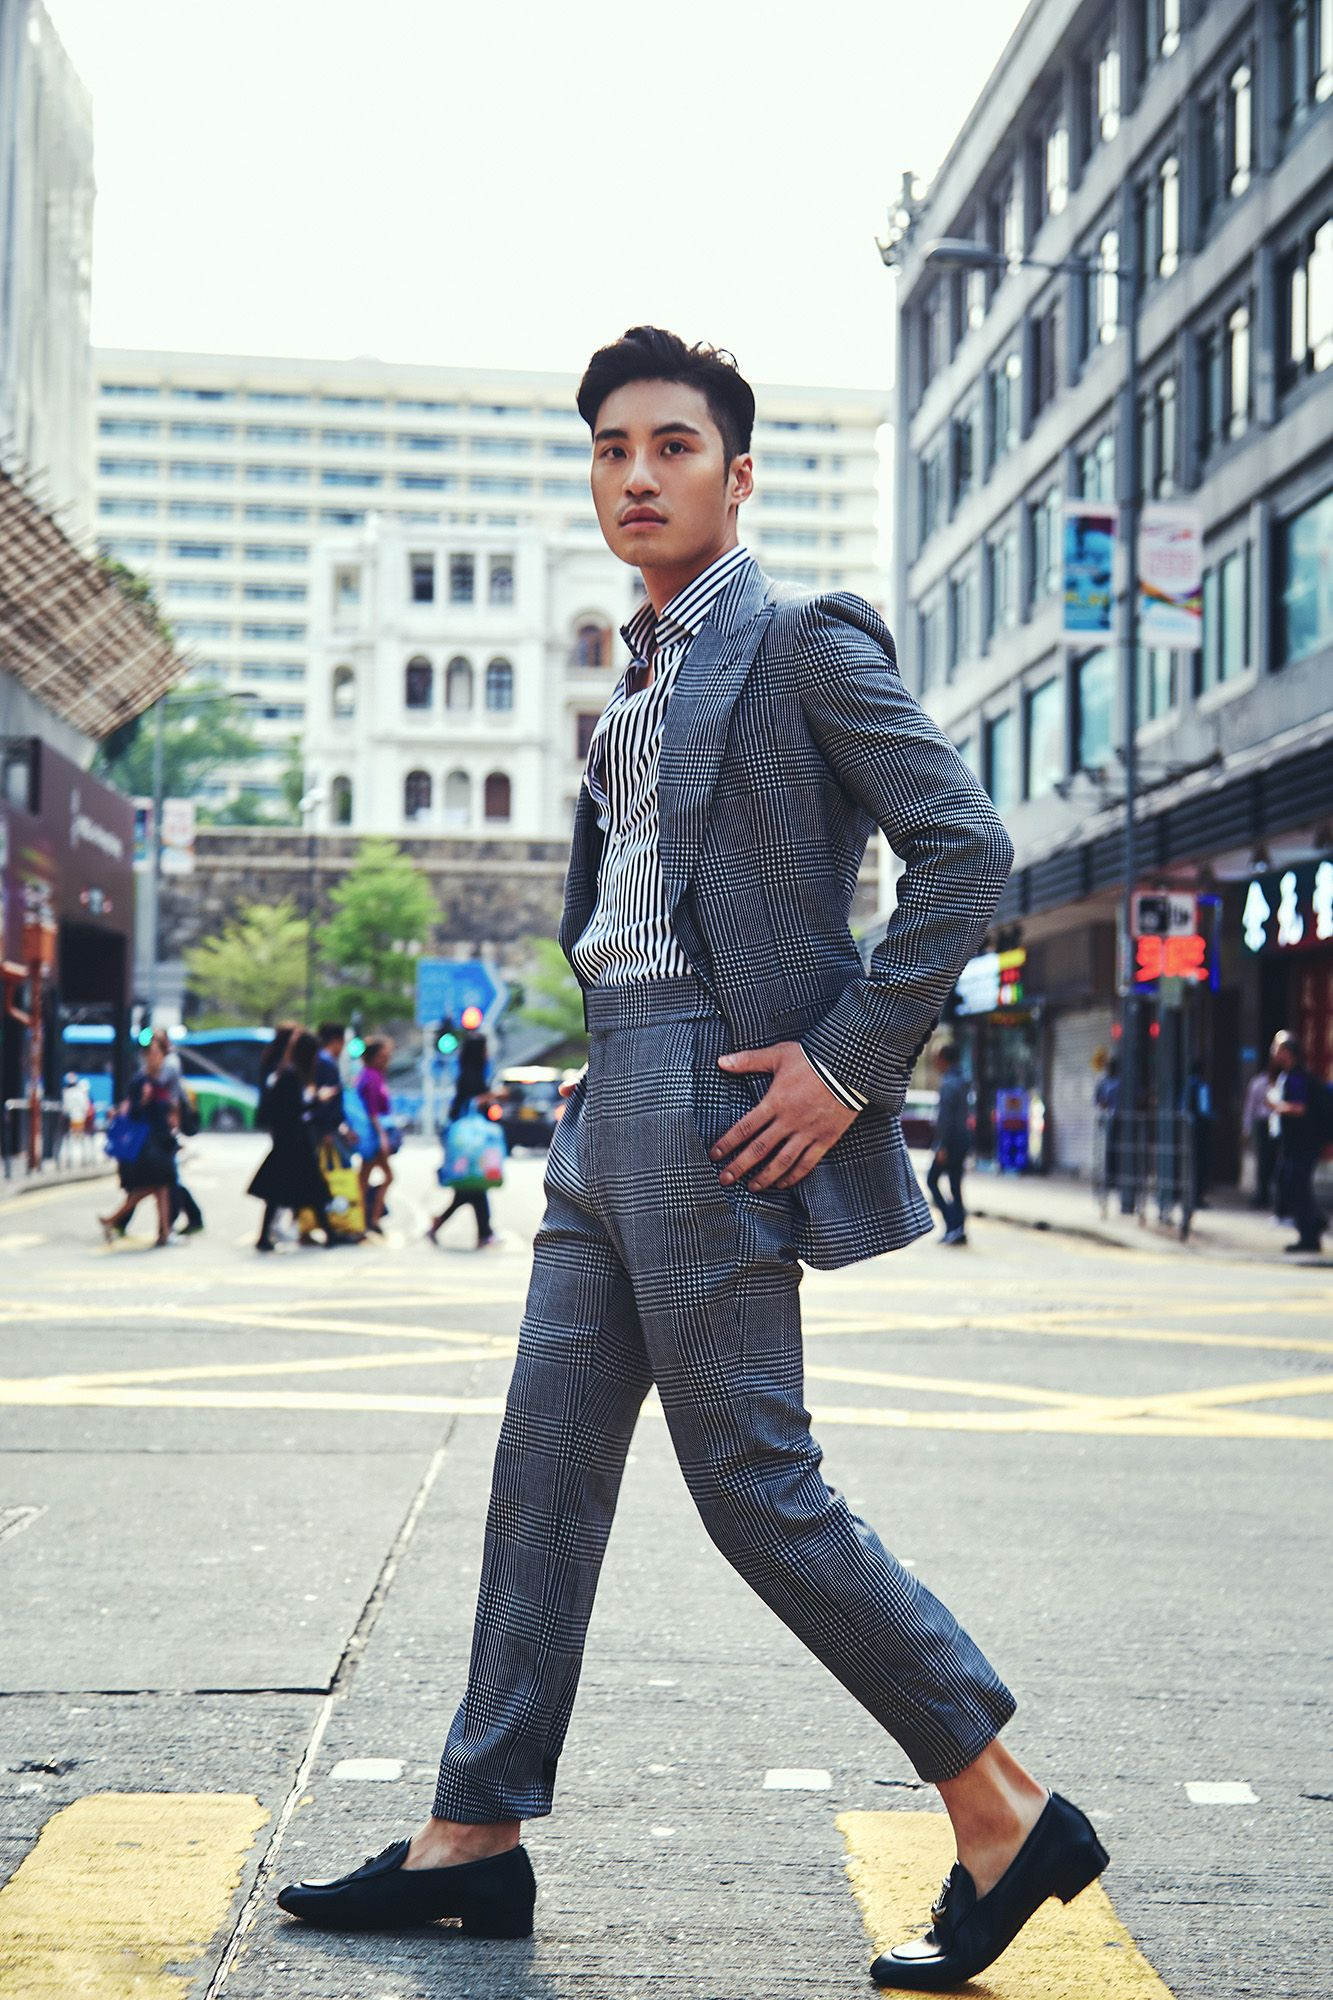 Loui wears a jacket, shirt, trousers by Tom Ford, shoes by Giuseppe Zanotti (Photography: Dino Busch/Hong Kong Tatler)